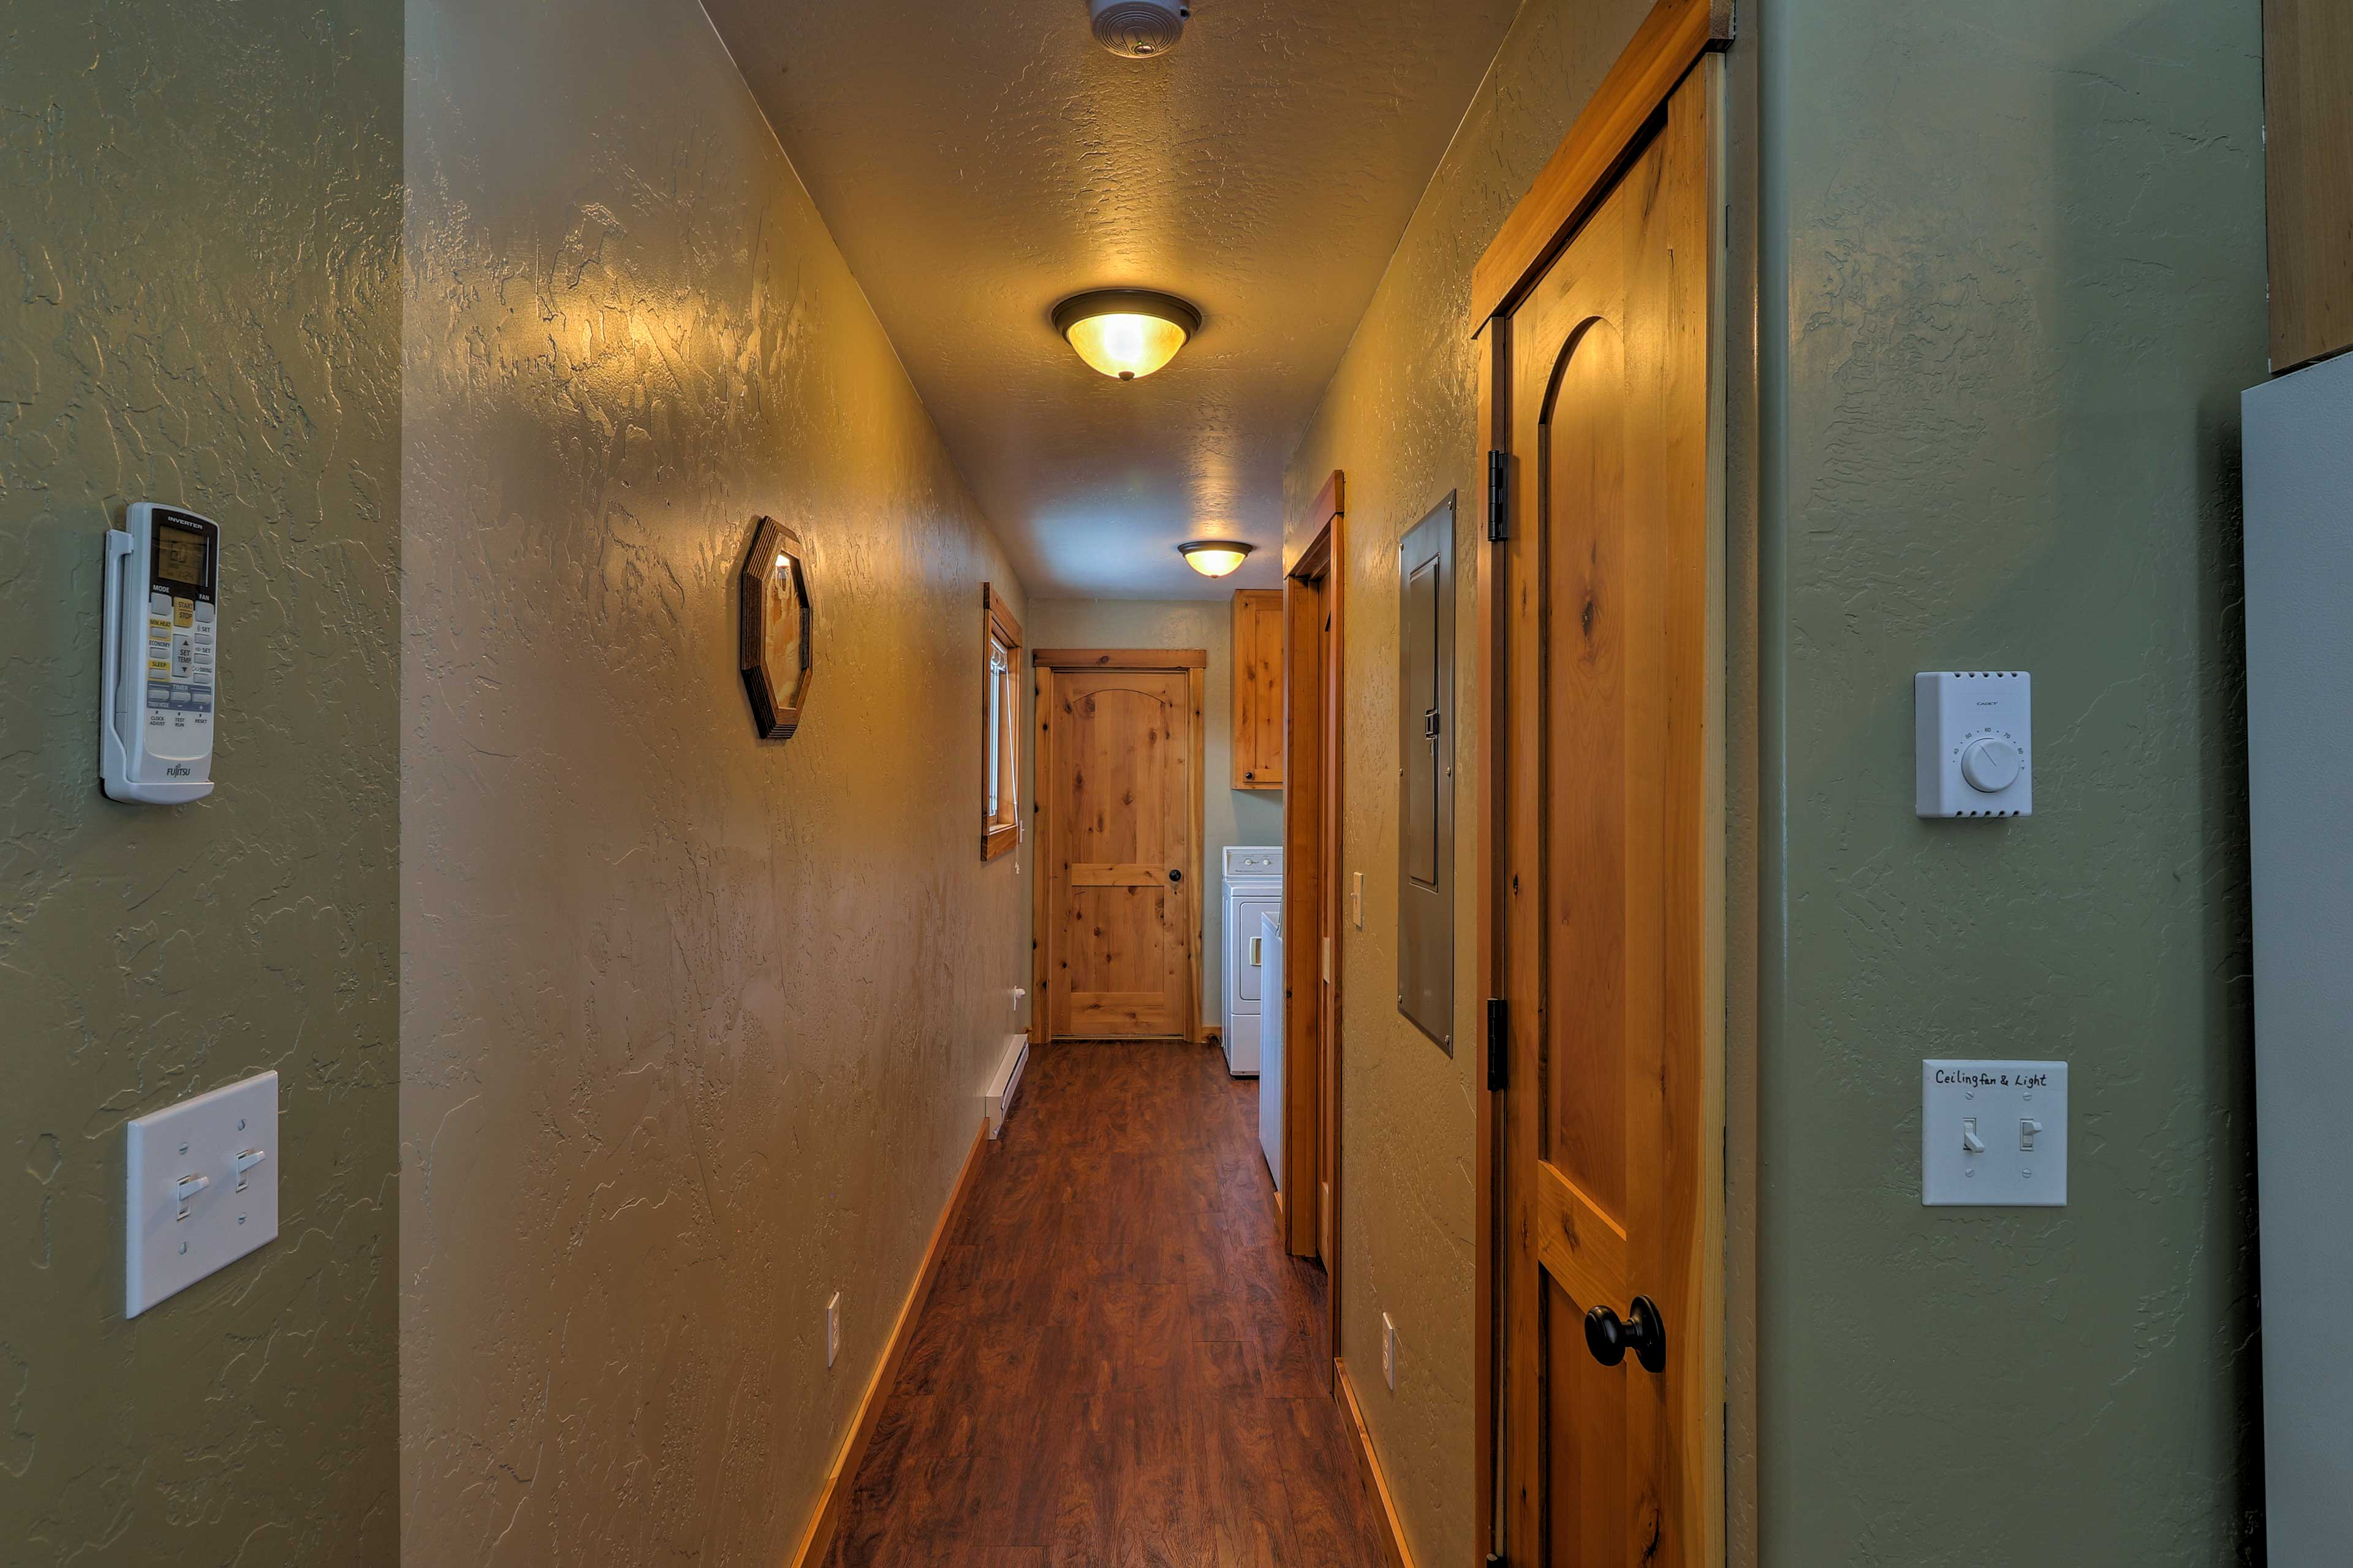 Head down the hall to find the bedrooms!